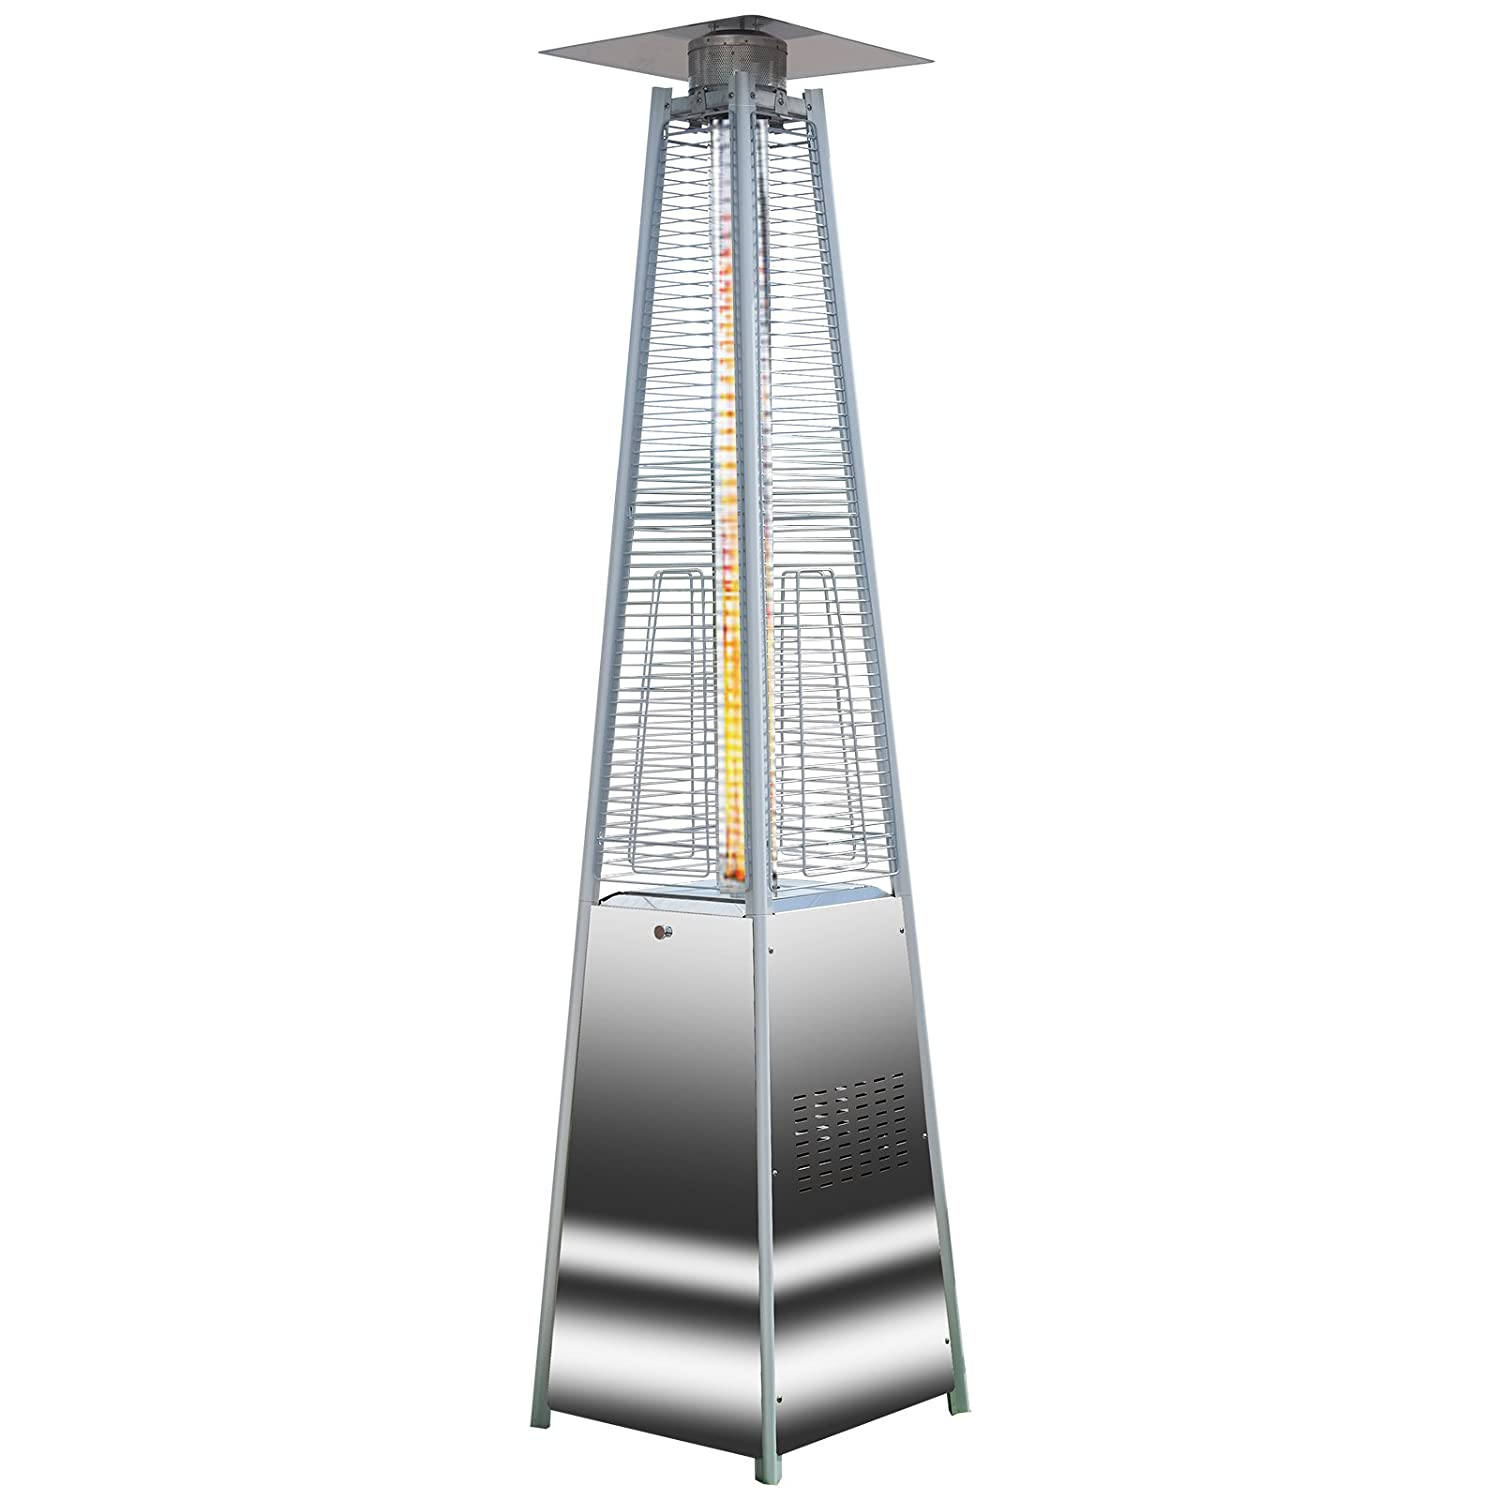 Quartz Glass Flame Tube Patio Heater Stainless Steel 227cm tall 13